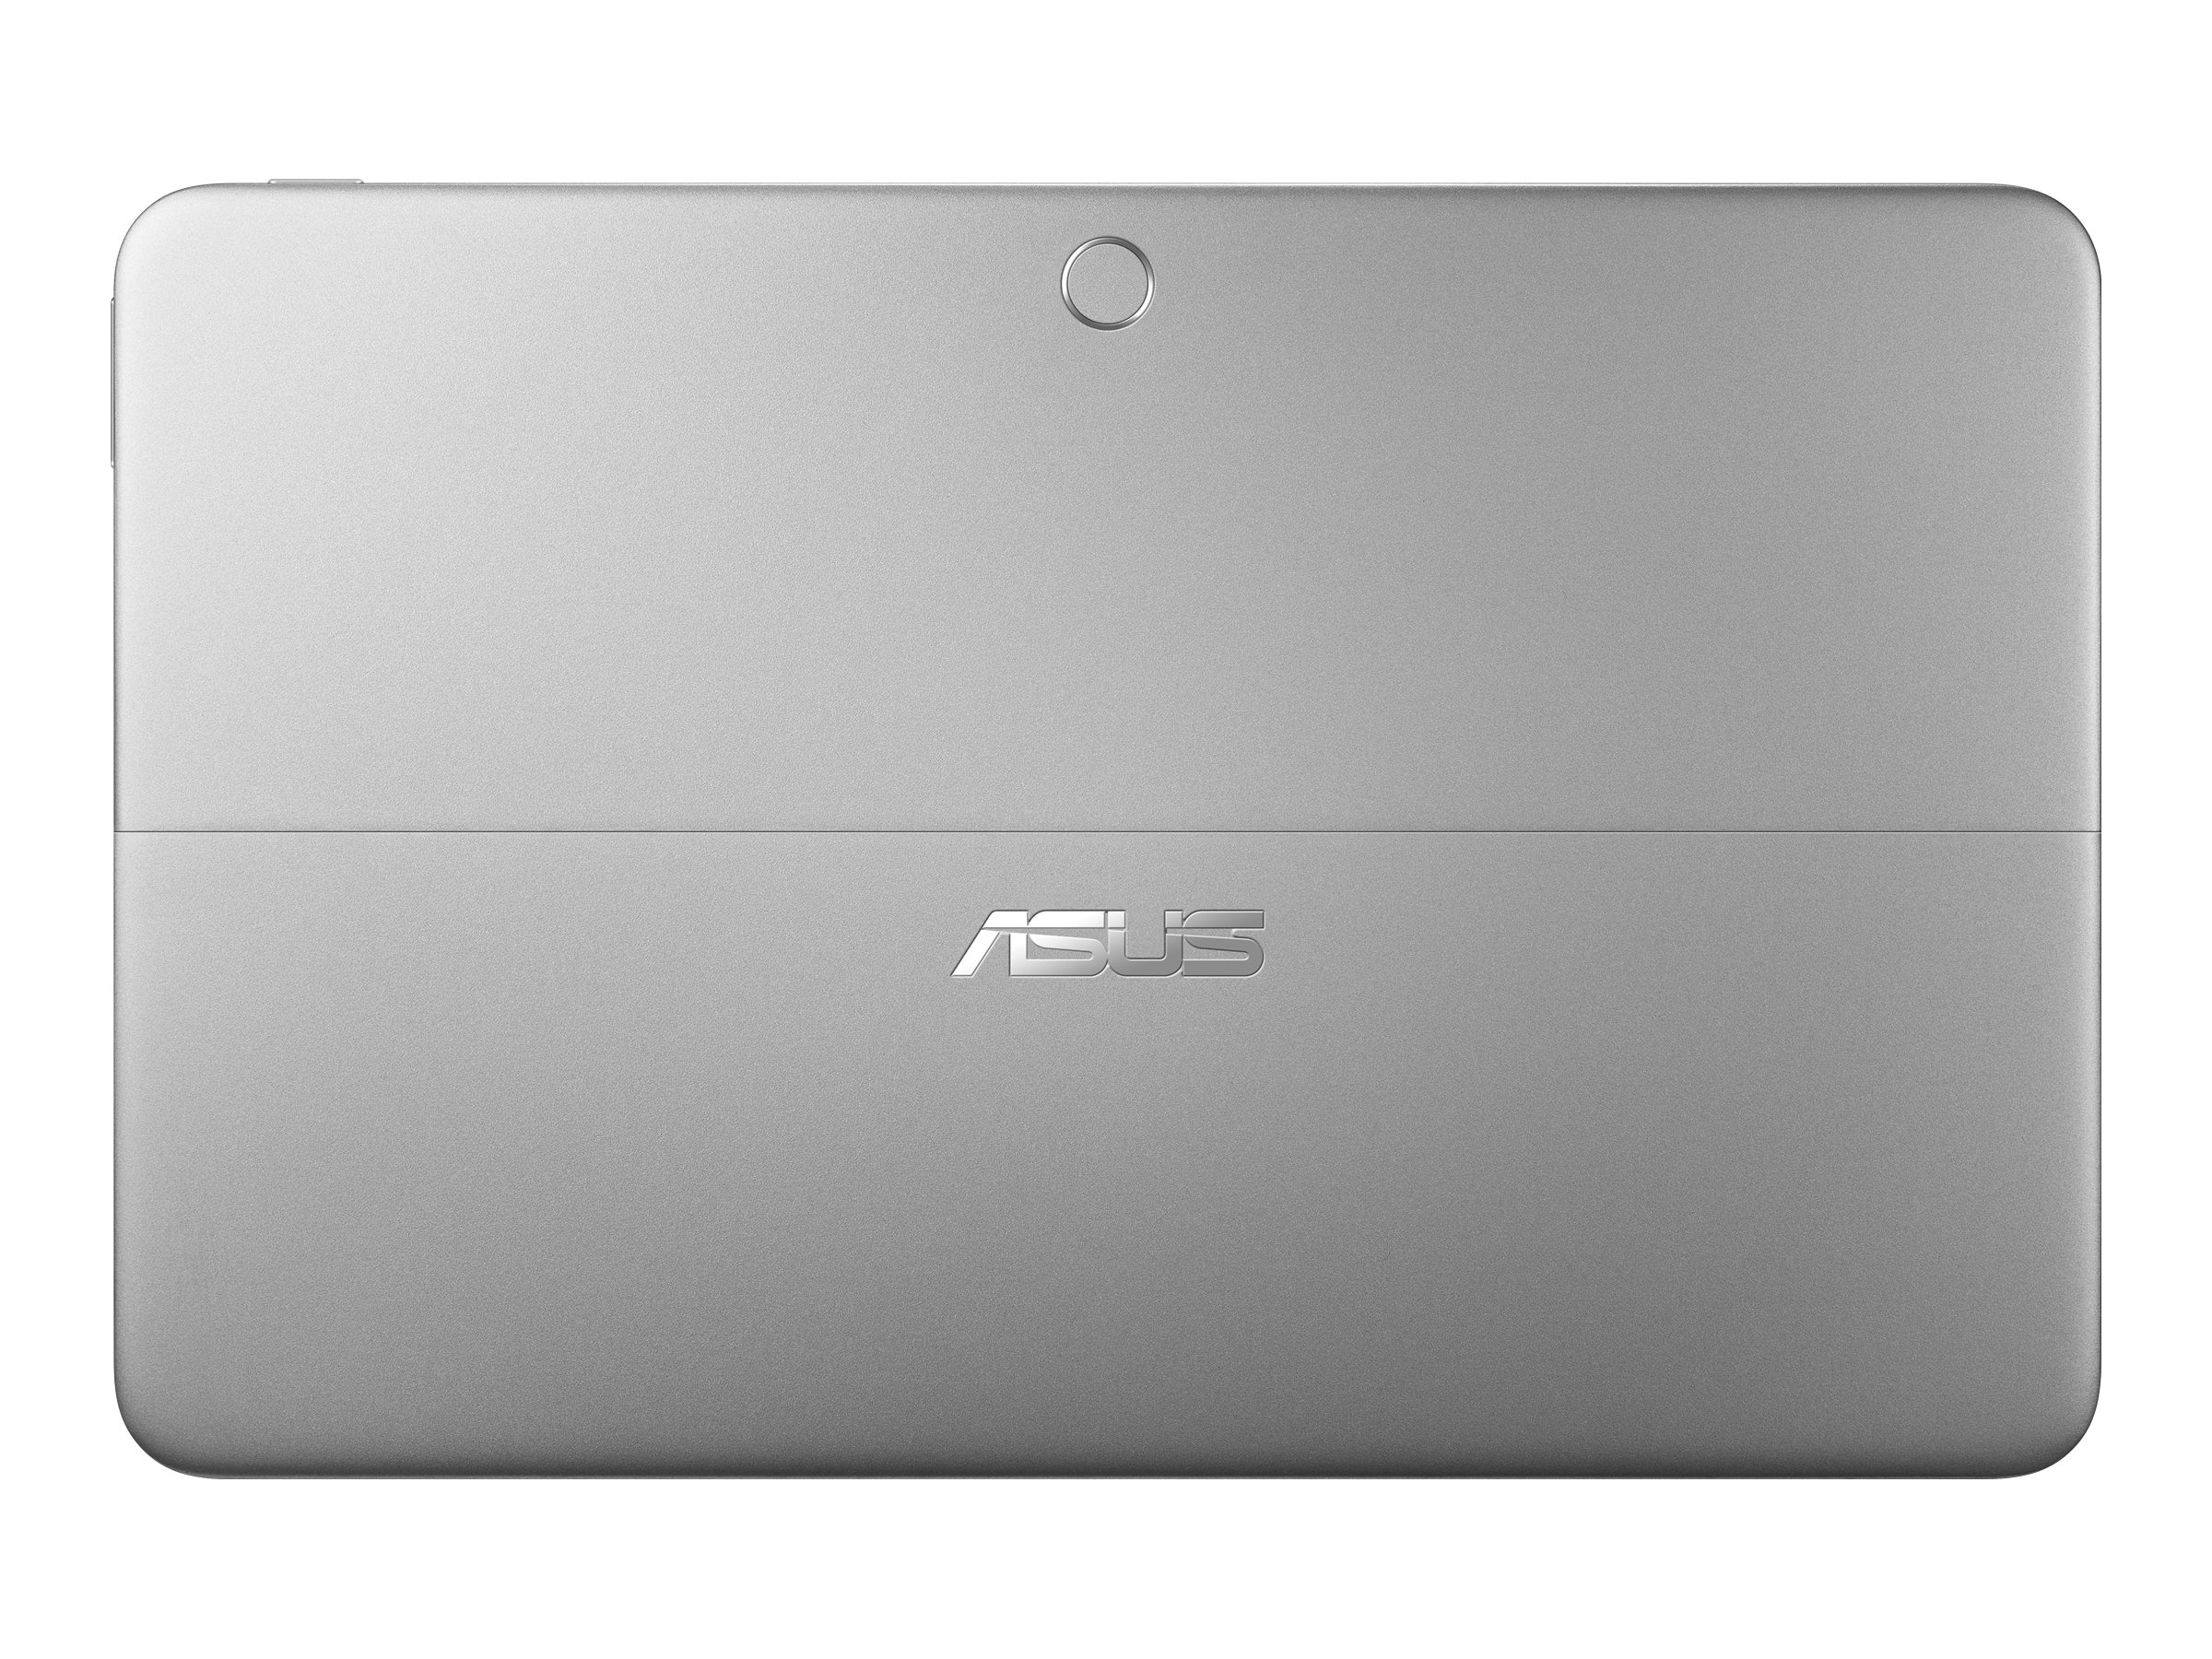 Asus Transformer Book Atom x5-Z8350 1.44GHz 4GB 128GB SSD 10.1 MT W10, T102HA-D4-GR